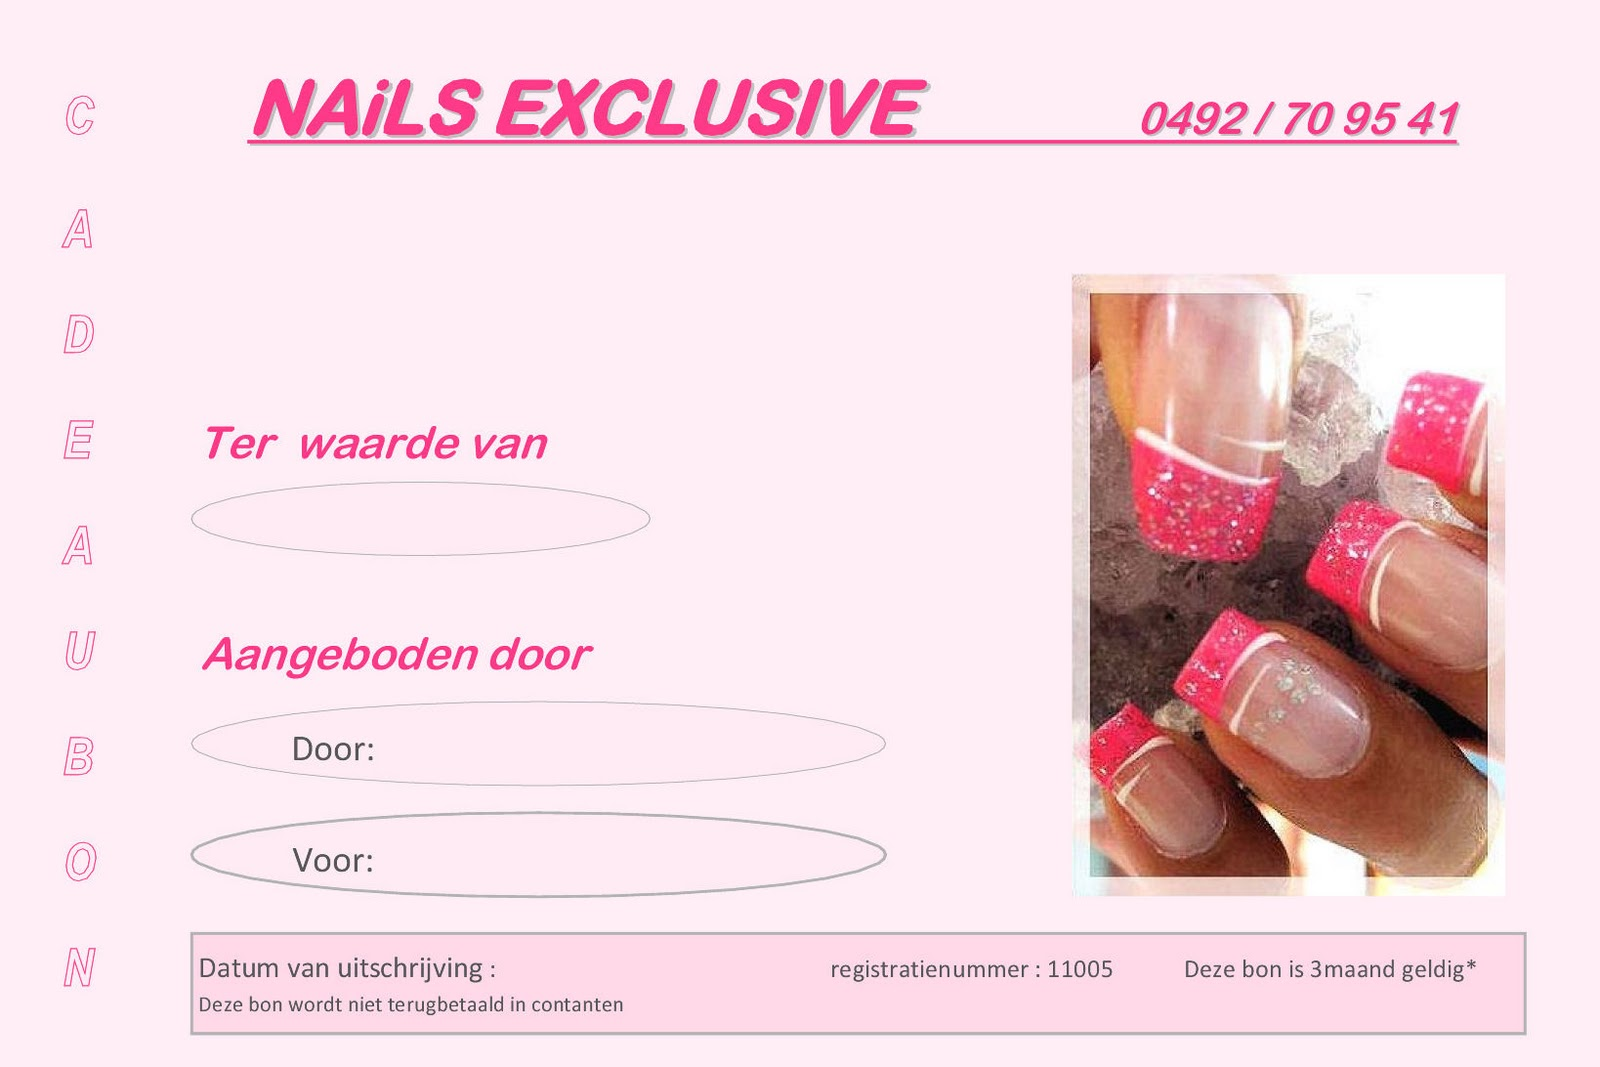 pink-nail-salon-gift-certificate-editable-word-doc